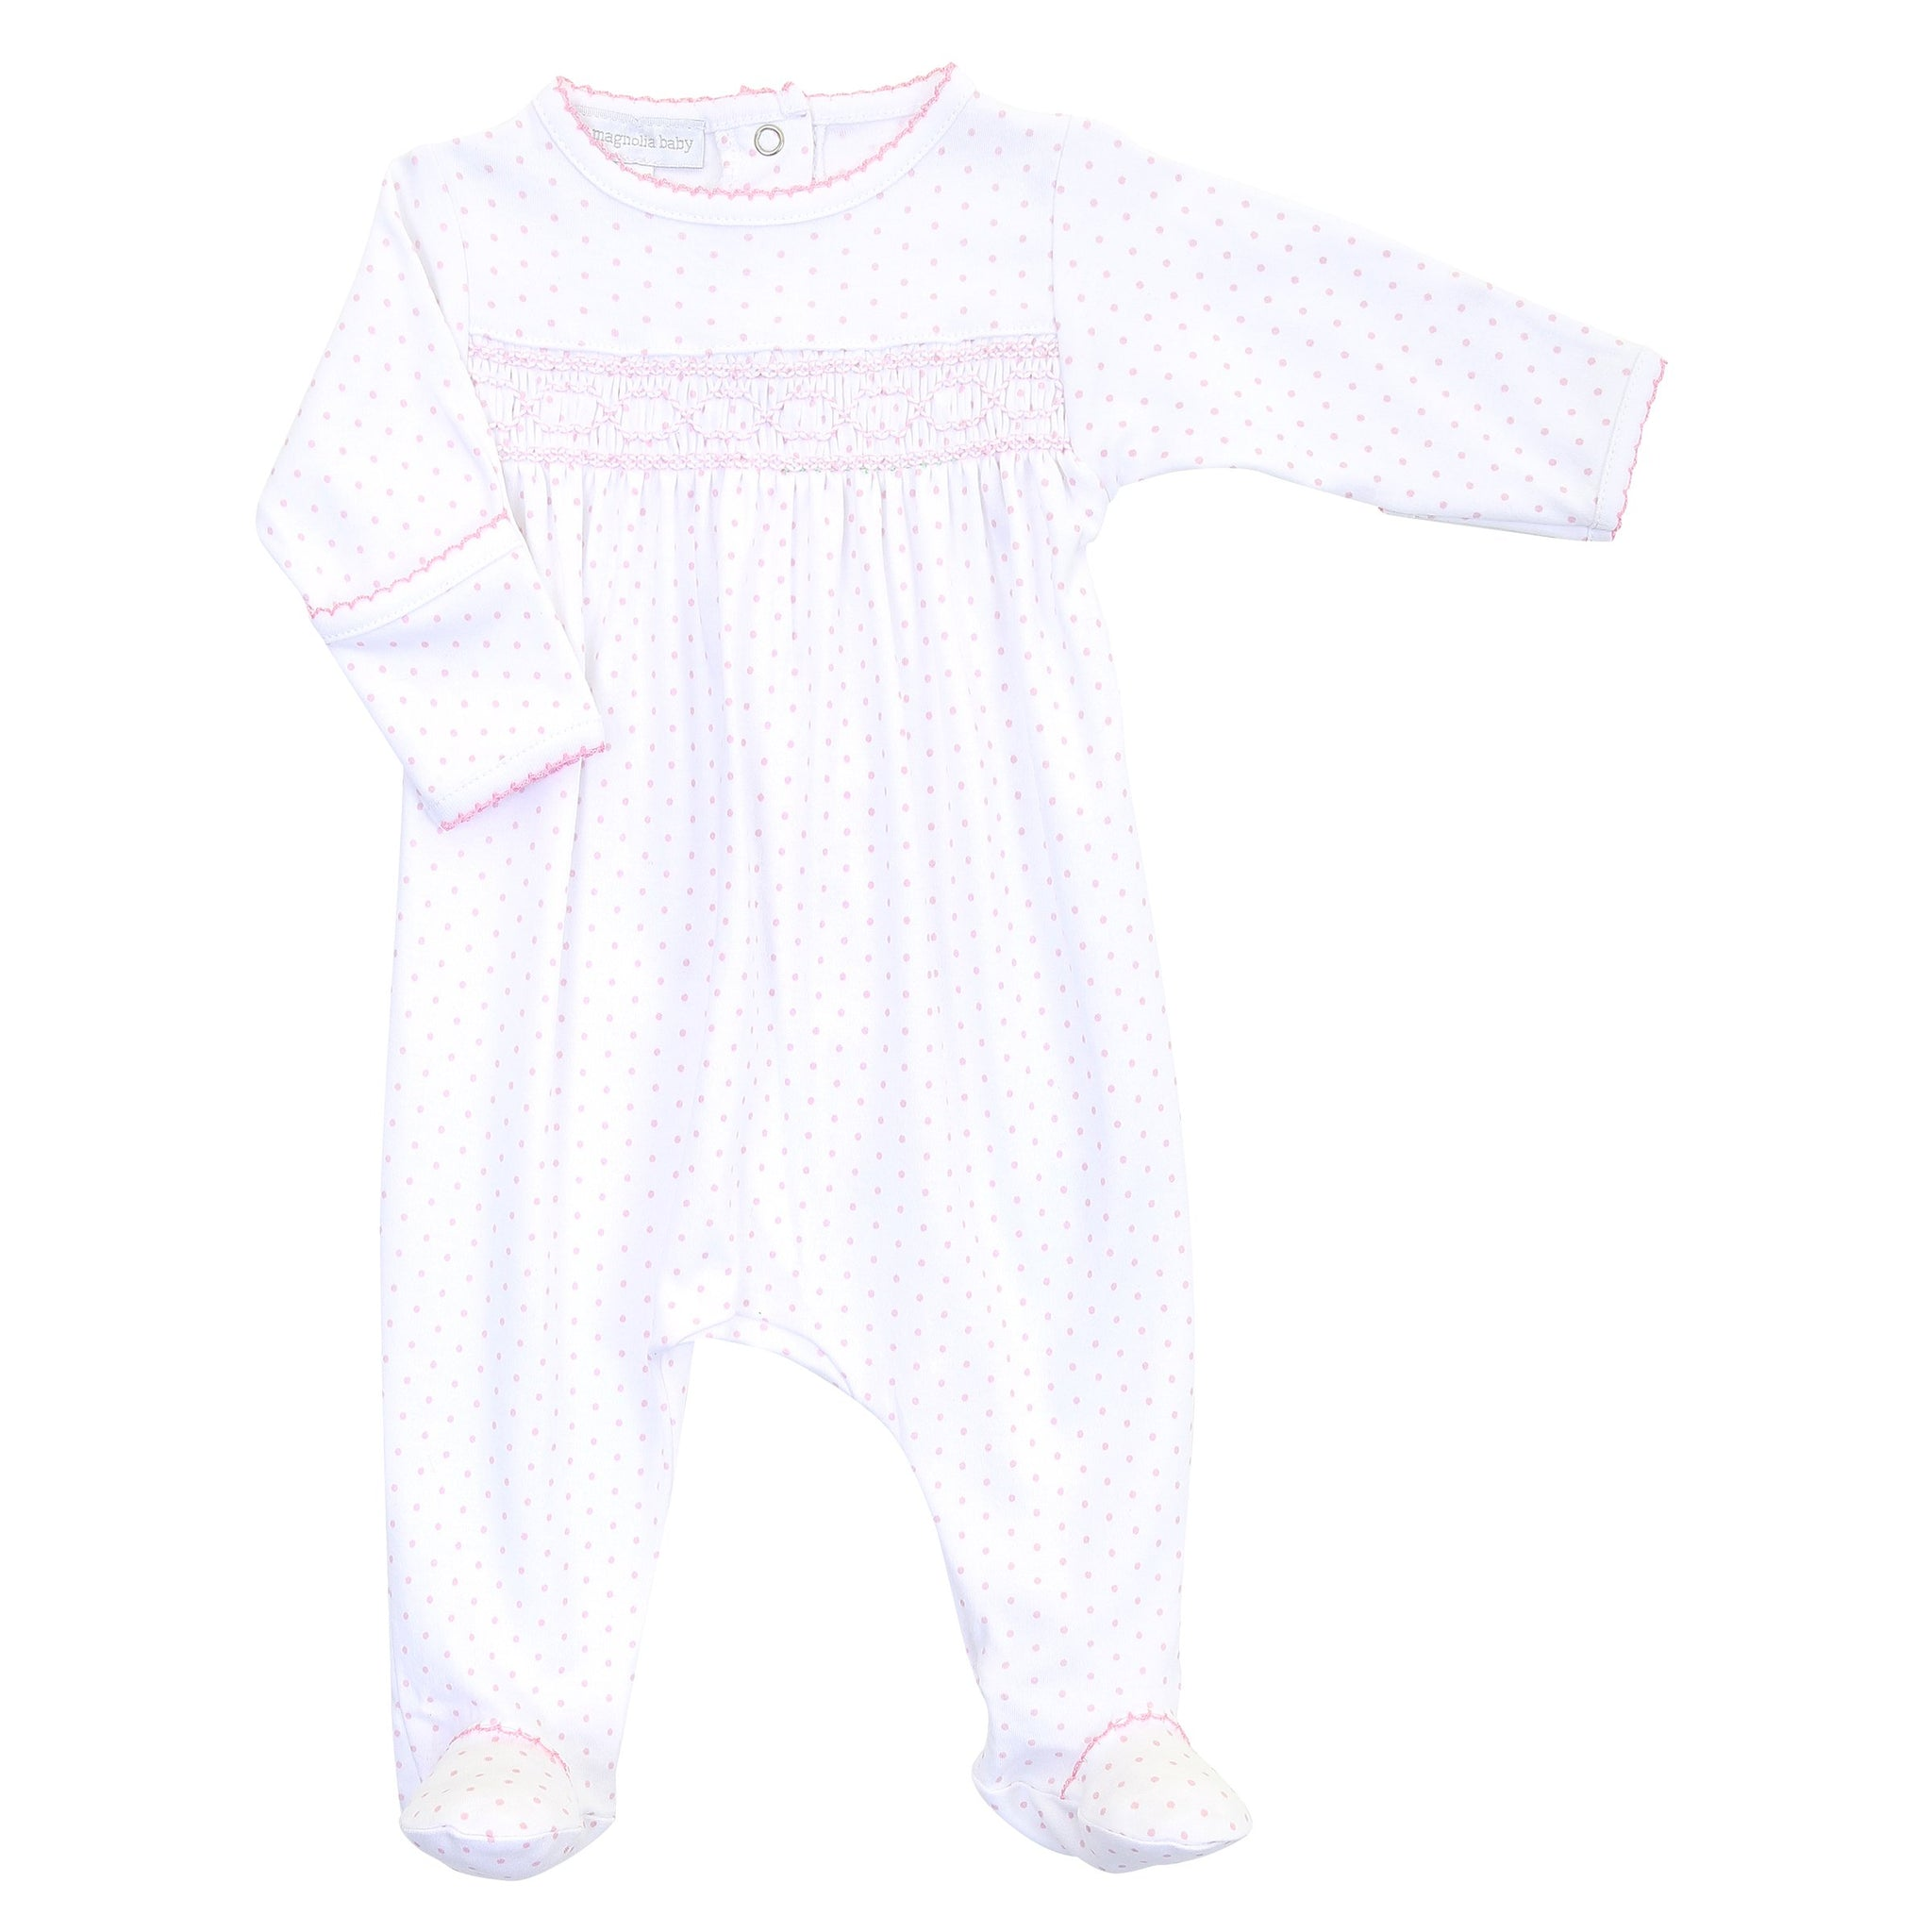 Magnolia Baby Mini Dot Essentials Smocked Footie